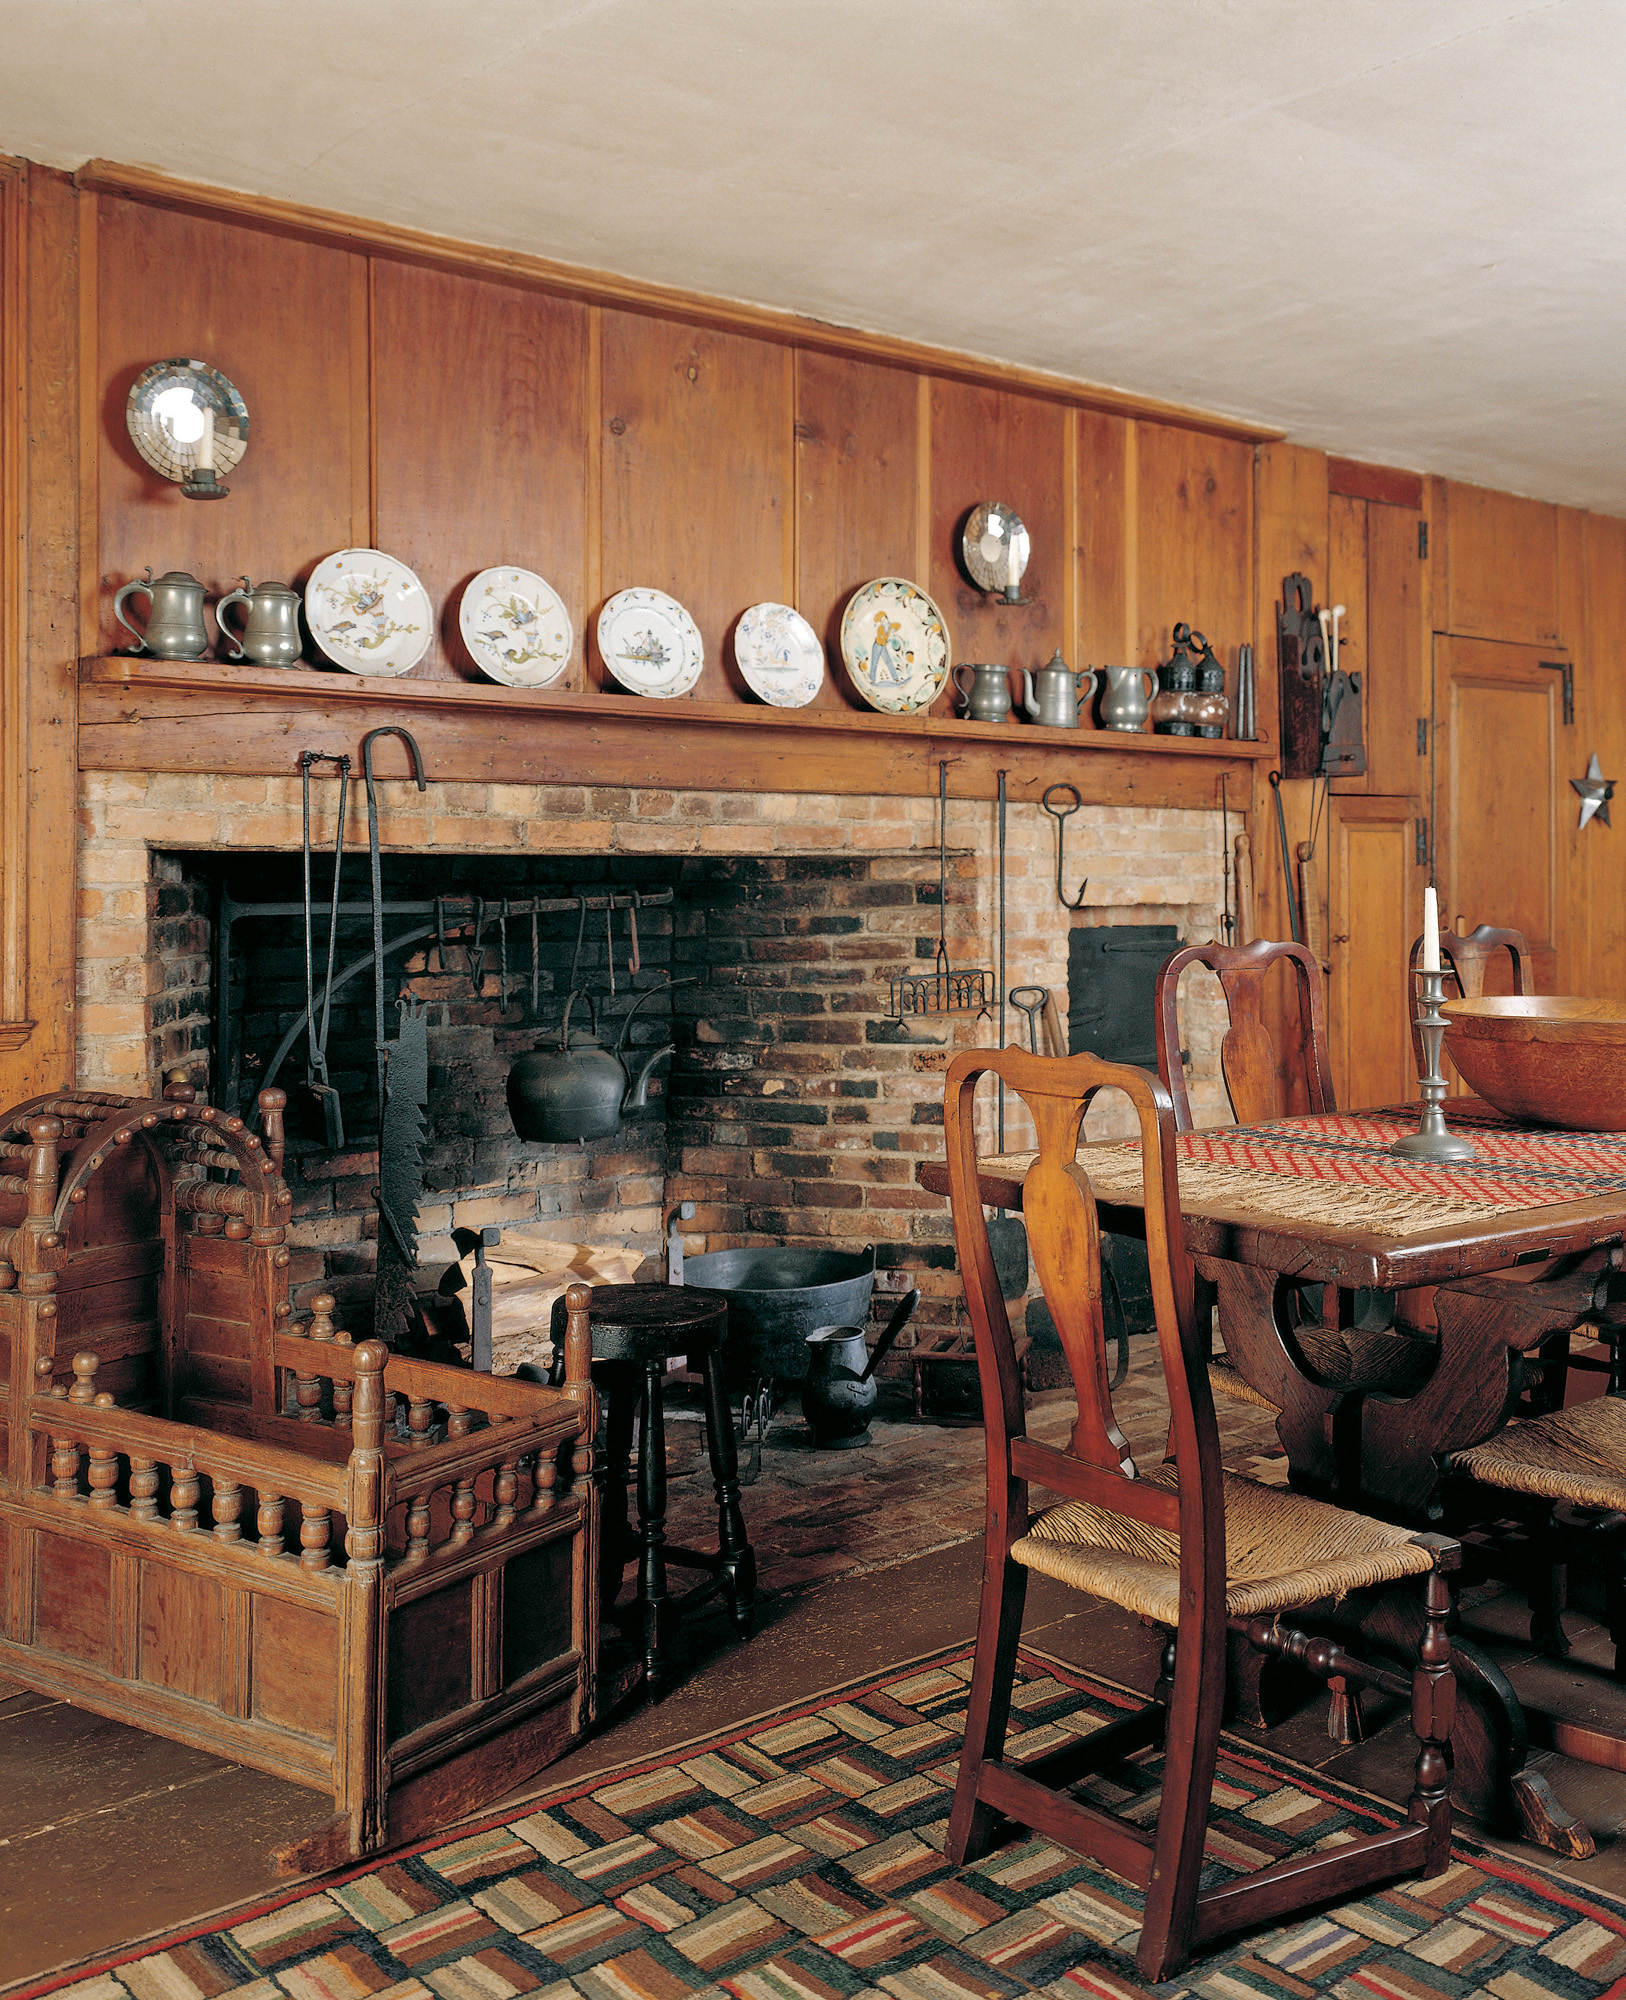 The 1930s owner used the old kitchen as her dining room, moving the fireplace oven for dramatic impact, stripping the woodwork, and decorating with pewter and ceramics.